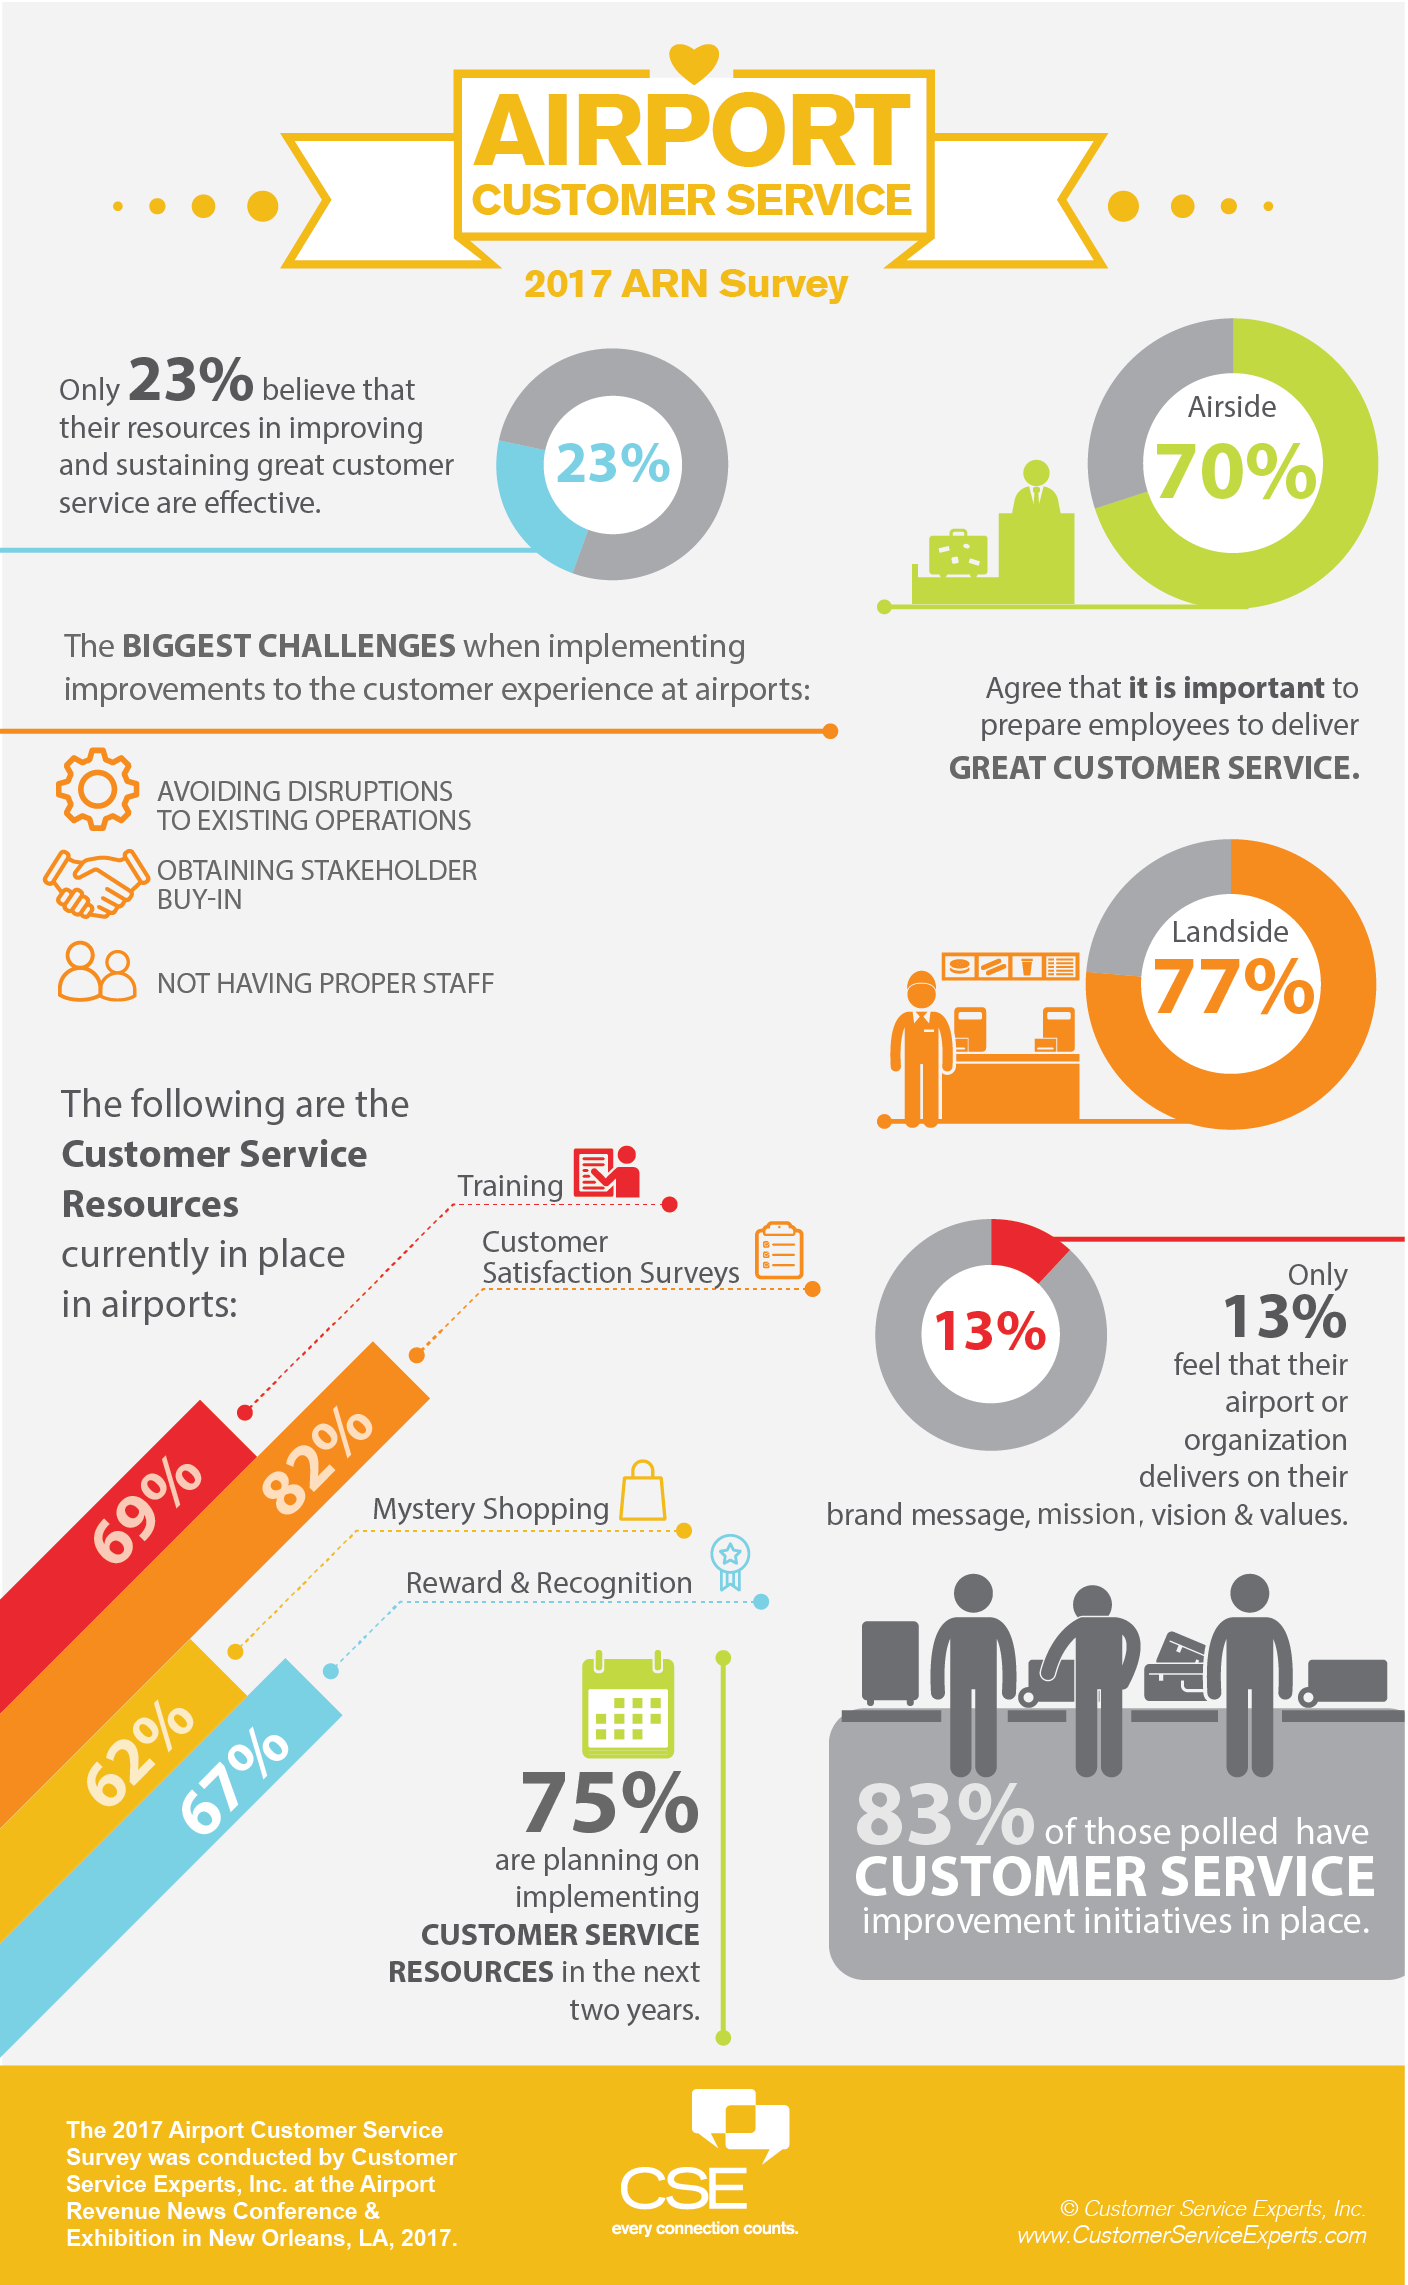 Airport Customer Service Survey Results_ARN 2017_v3.png